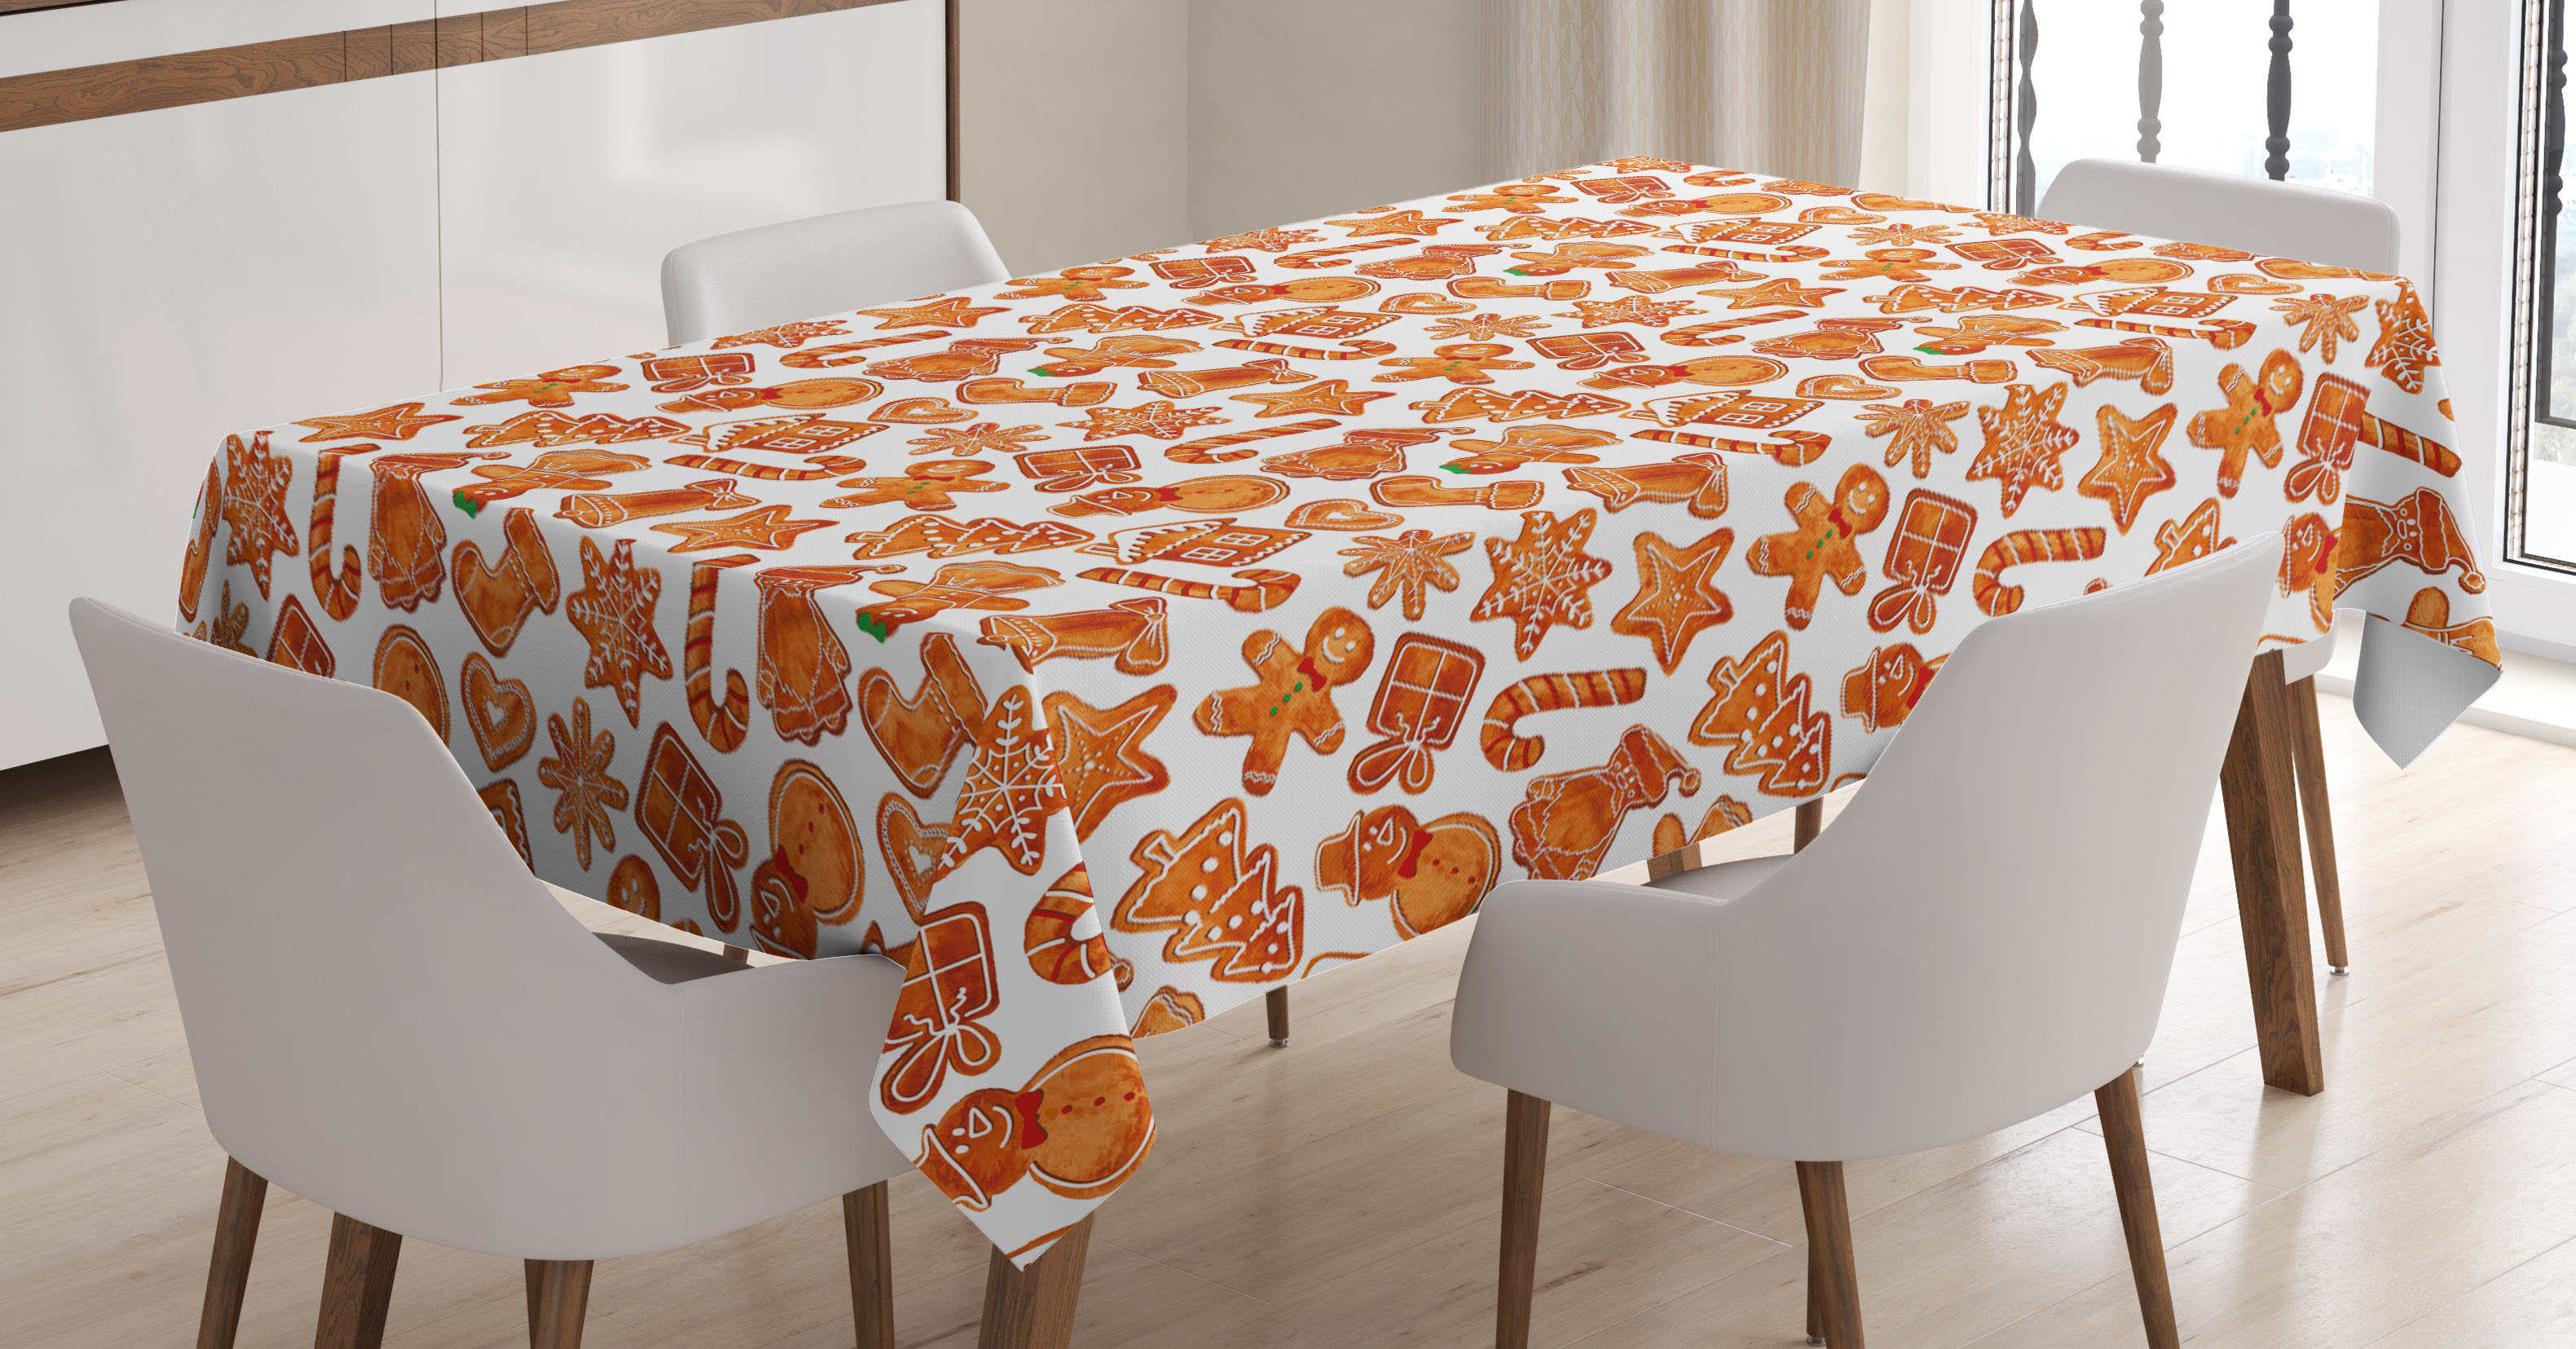 Charmant Christmas Tablecloth, Gingerbread Man House Cones Xmas Festive Cookie  Celebration Theme, Rectangular Table Cover